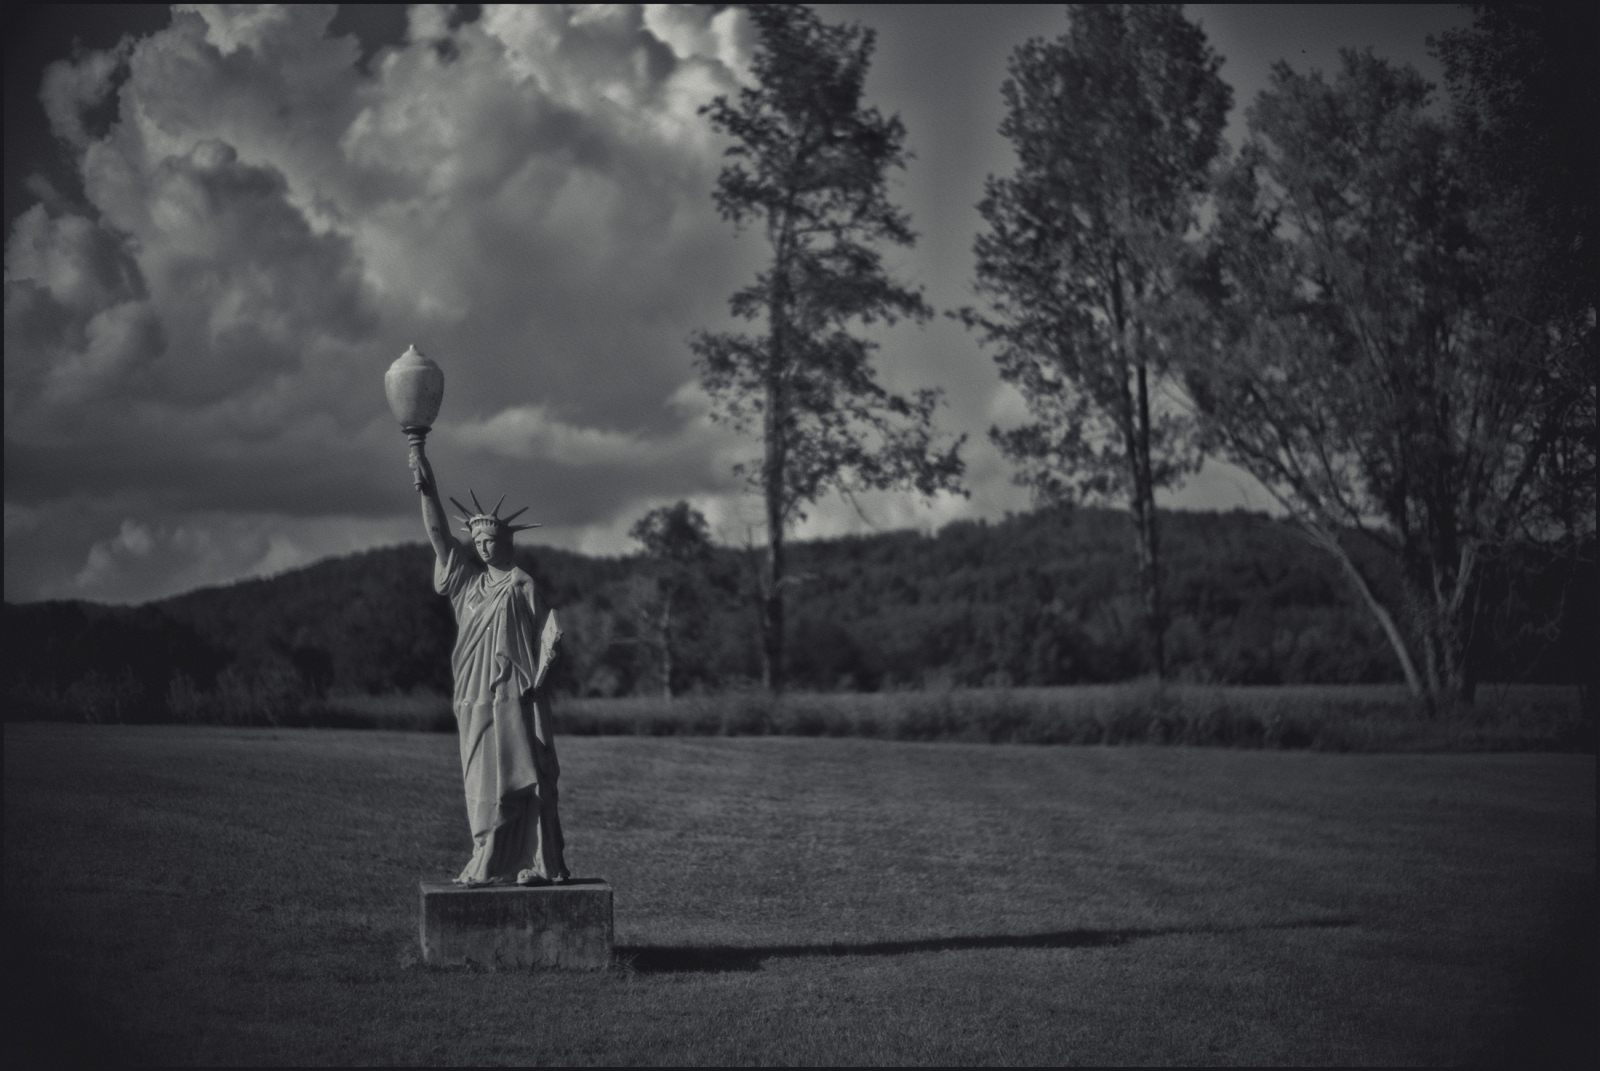 """Lady Liberty"". Alone in a field along a county road at the Kentucky- Tennessee line. Pal Mal, Tn. 2016."